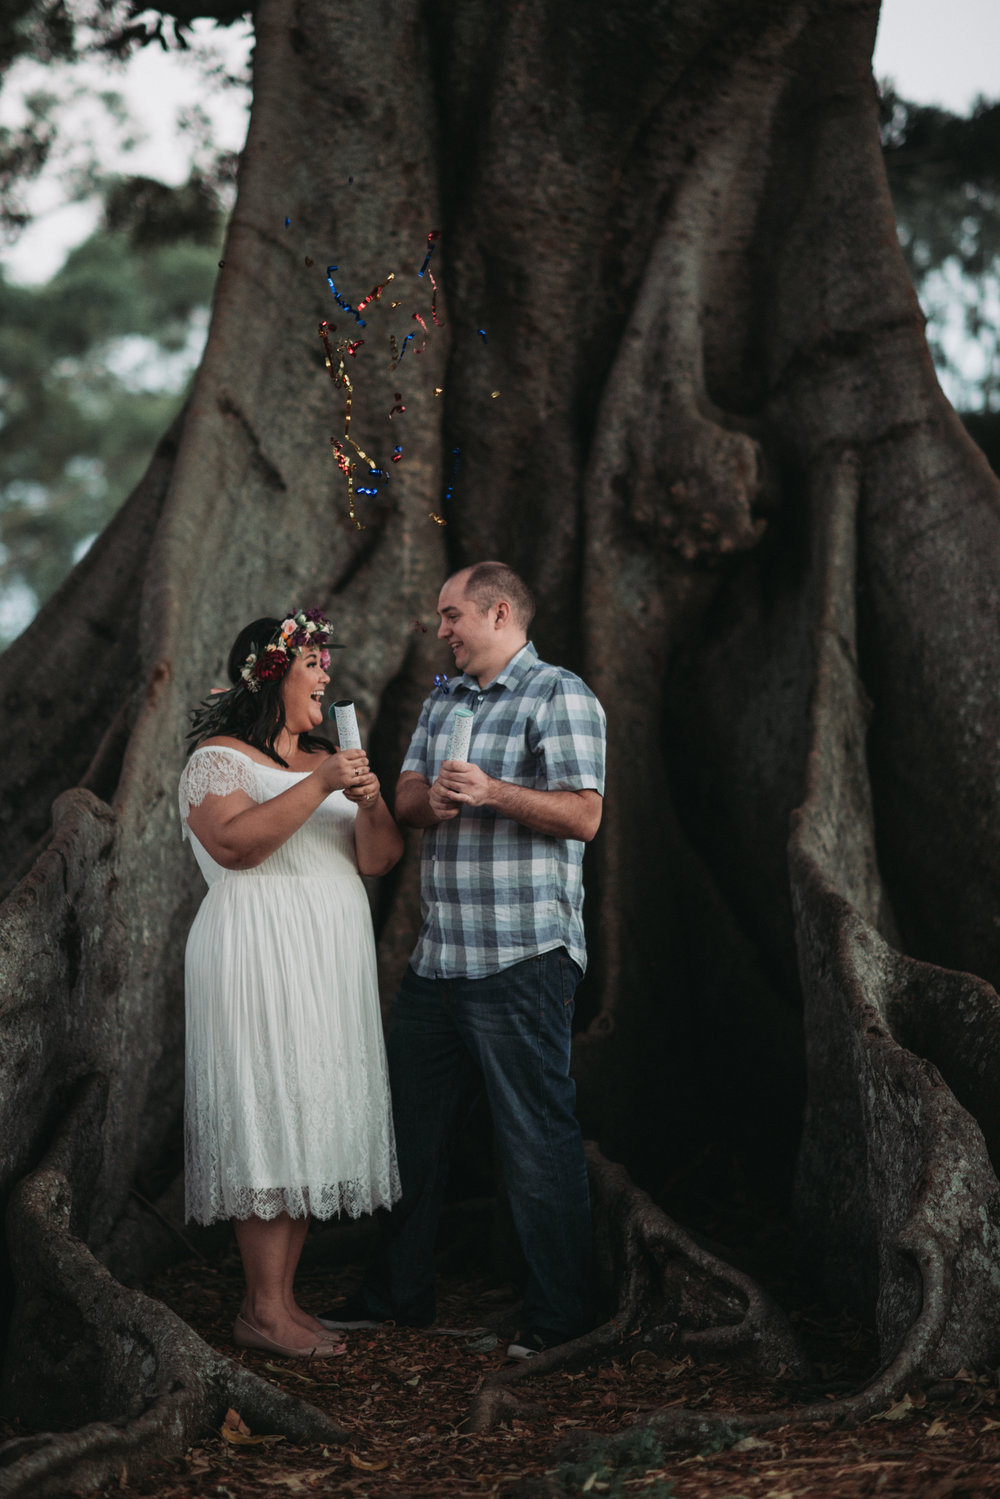 Engagement Photoshoot Inspiration Brisbane Wedding Photography Confetti Popper Bright Flowers Bouquet Floral Crown Old Petrie Town Lovelenscapes Photography www.lovelenscapes.com